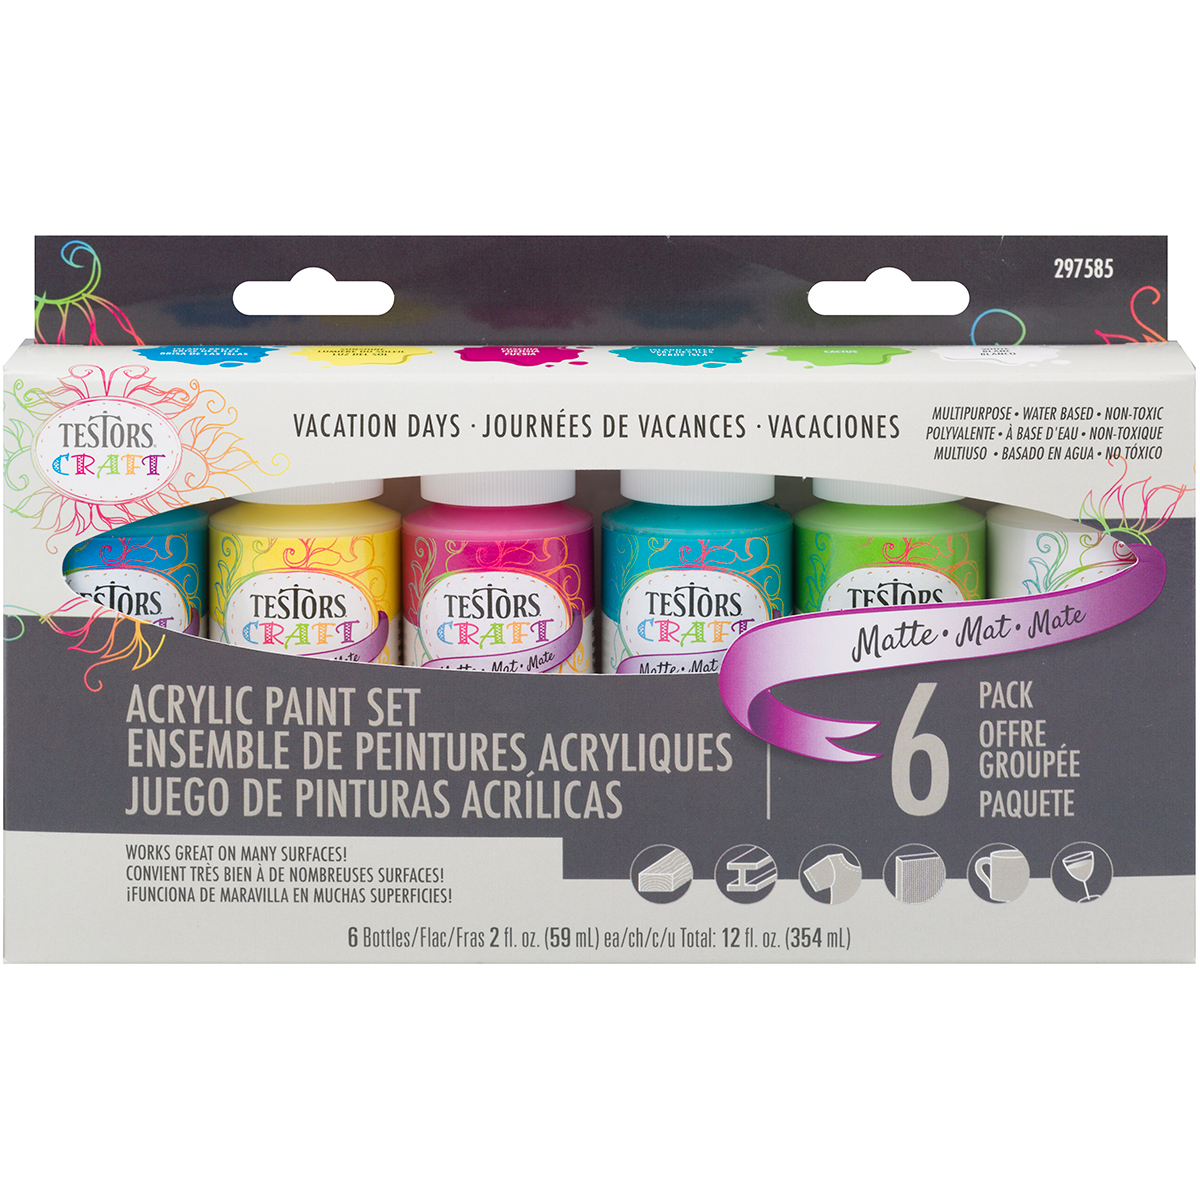 Testors Craft Acrylic Paint, Matte, 6-Pack